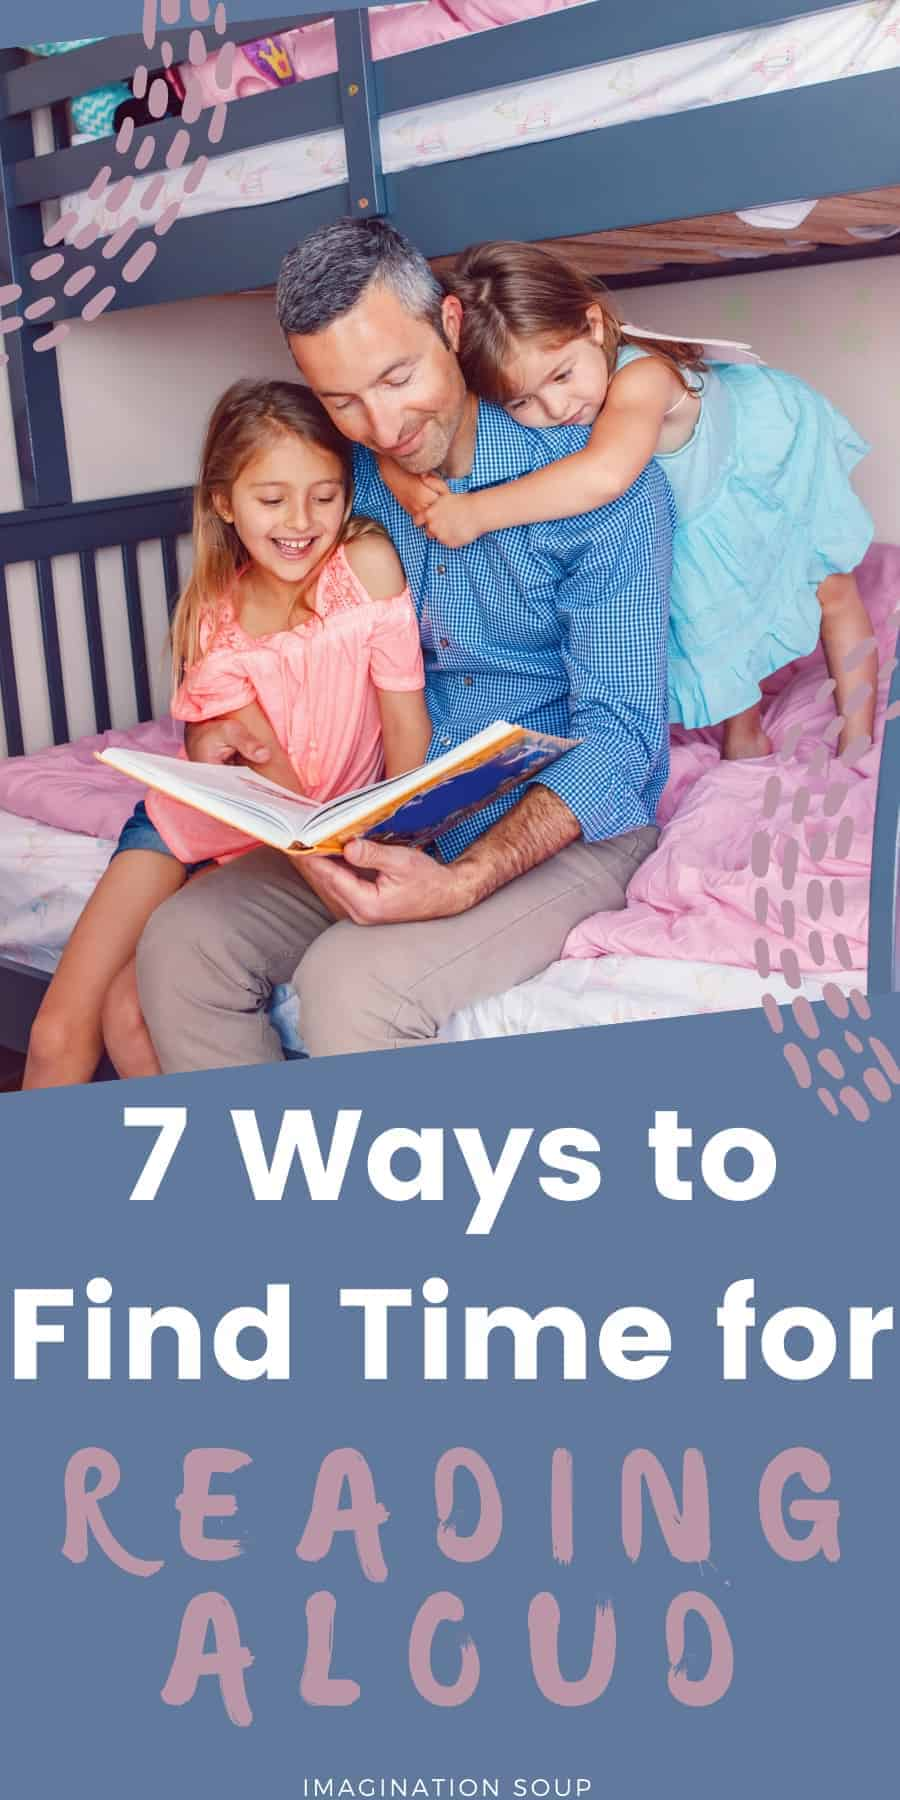 7 Creative Ideas for Finding Reading Aloud Time